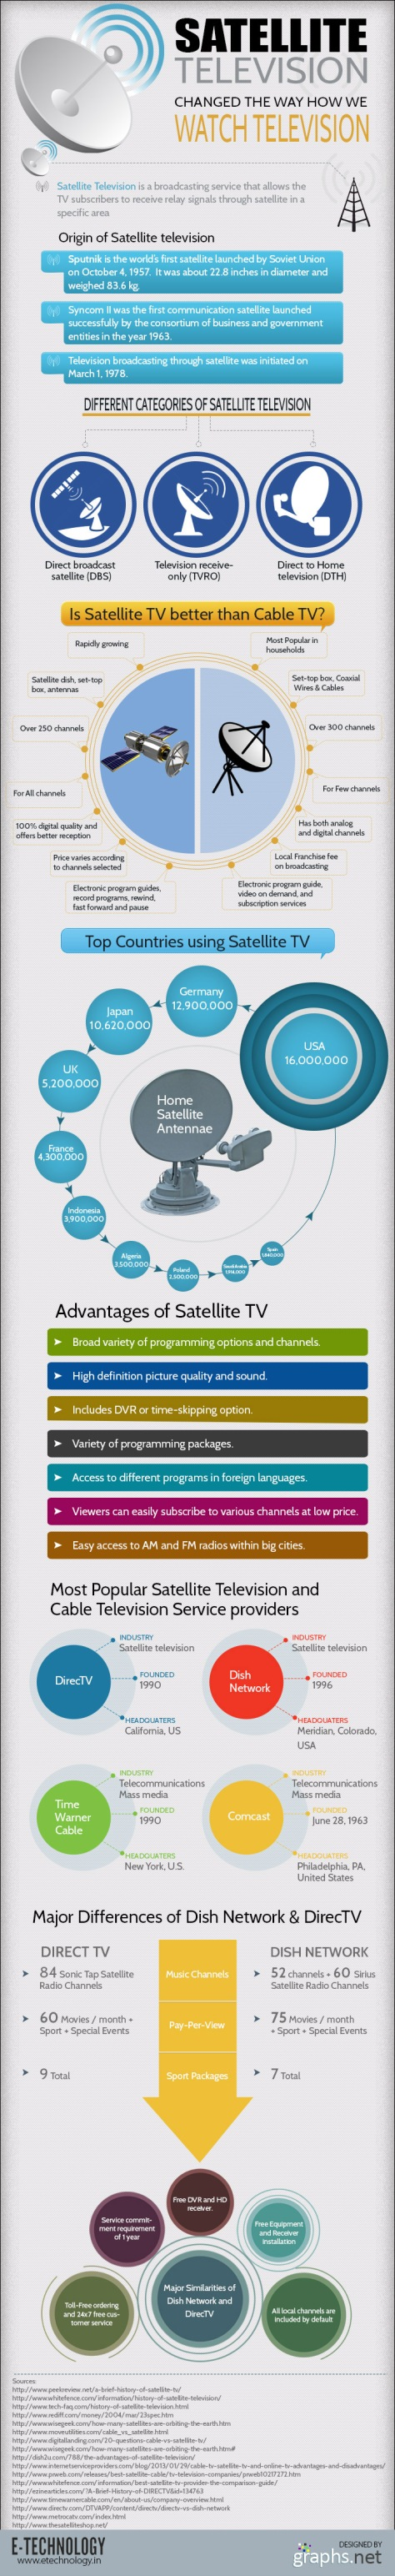 Is Satellite TV Better Than Cable TV